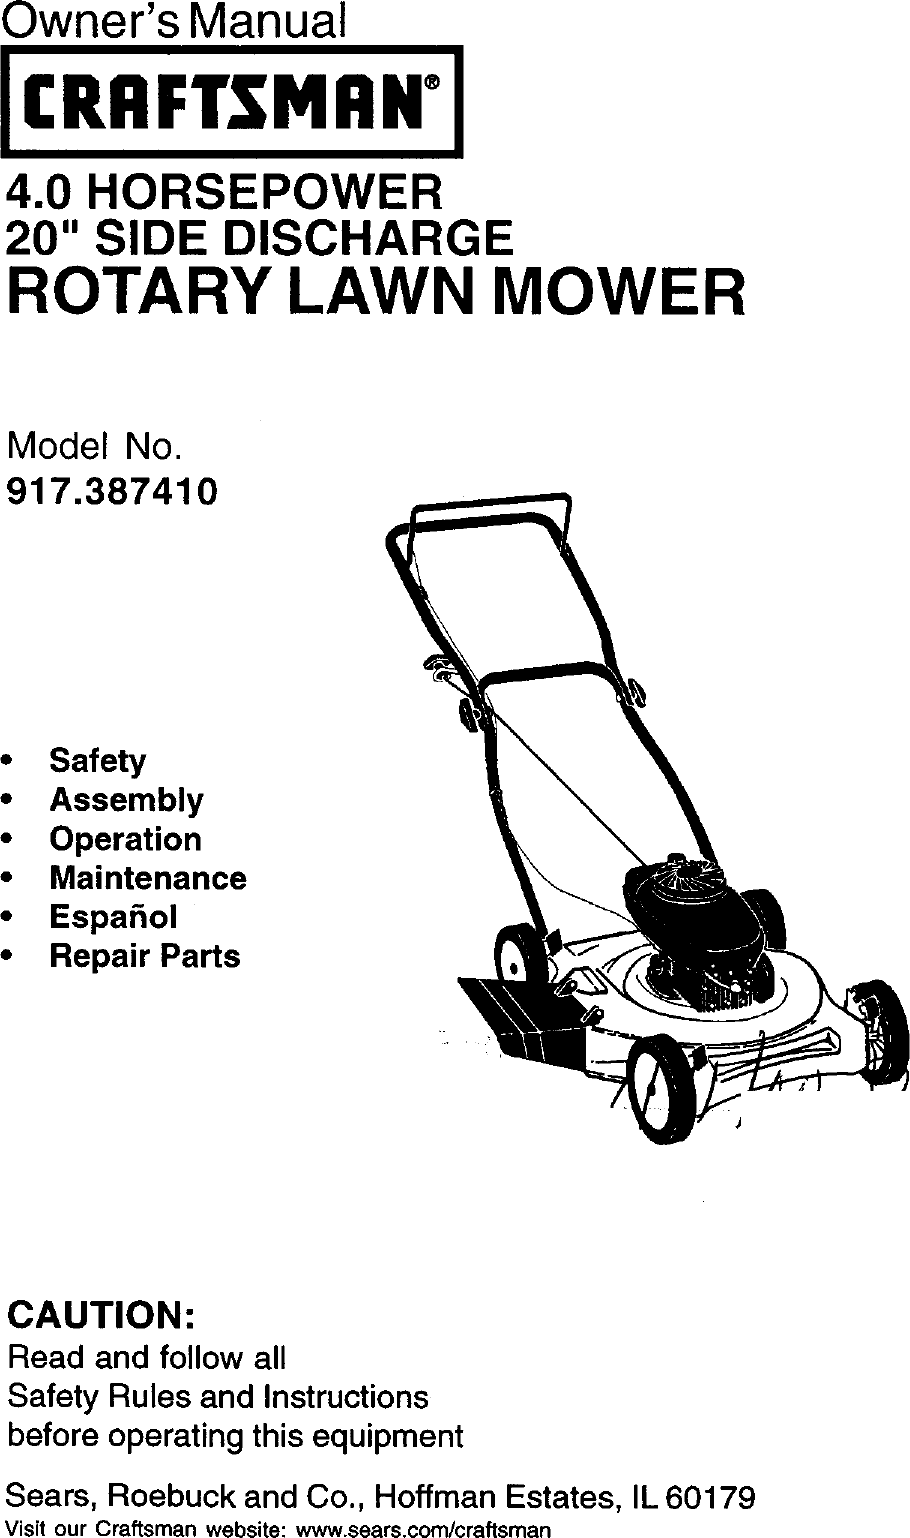 Craftsman 917387410 User Manual ROTARY MOWER Manuals And